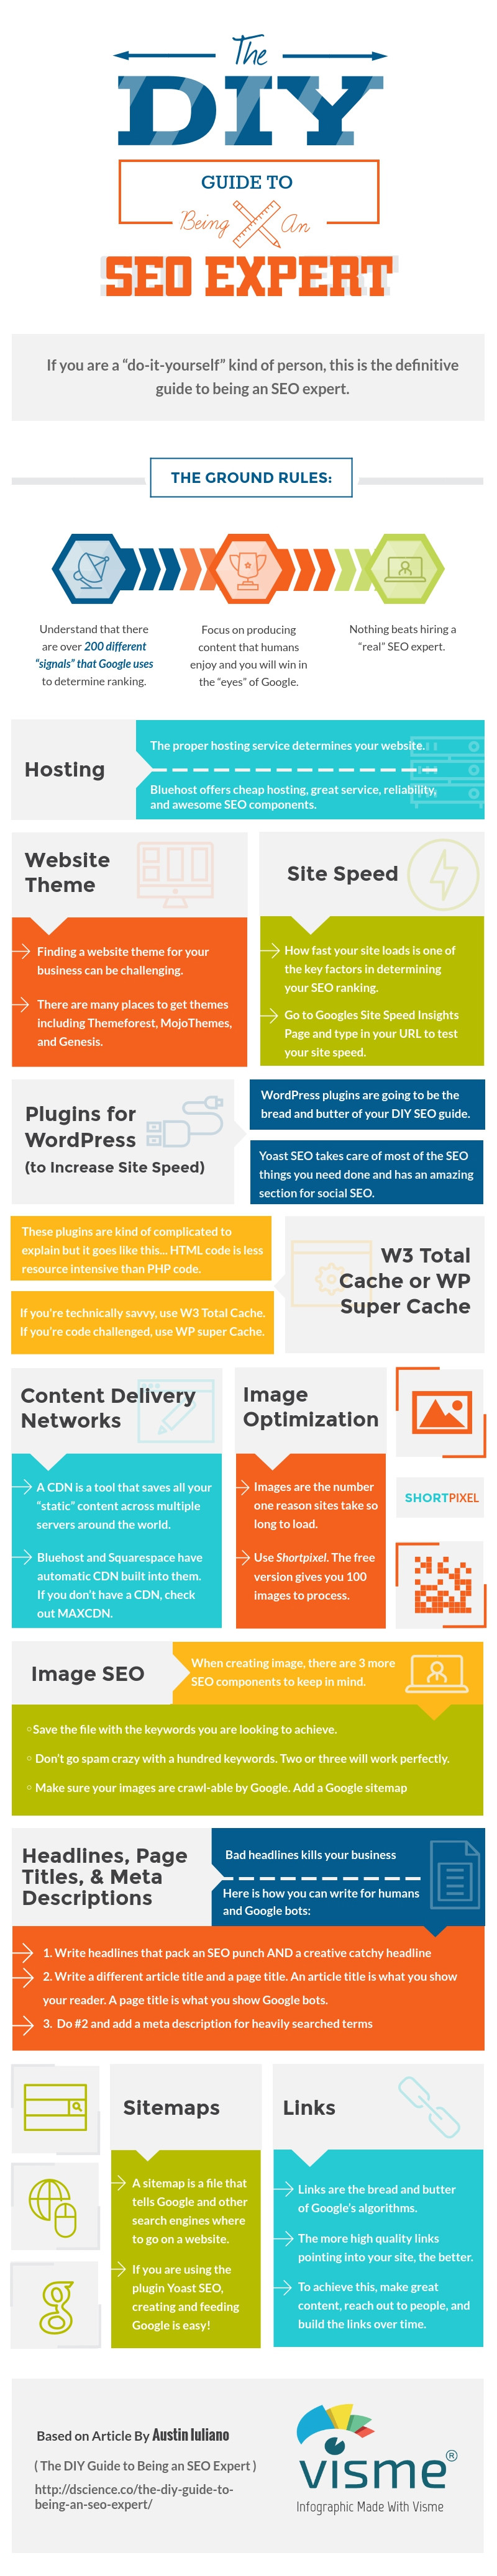 Best ideas about DIY Website Design . Save or Pin DIY SEO How to Be e an SEO Expert Infographic Now.